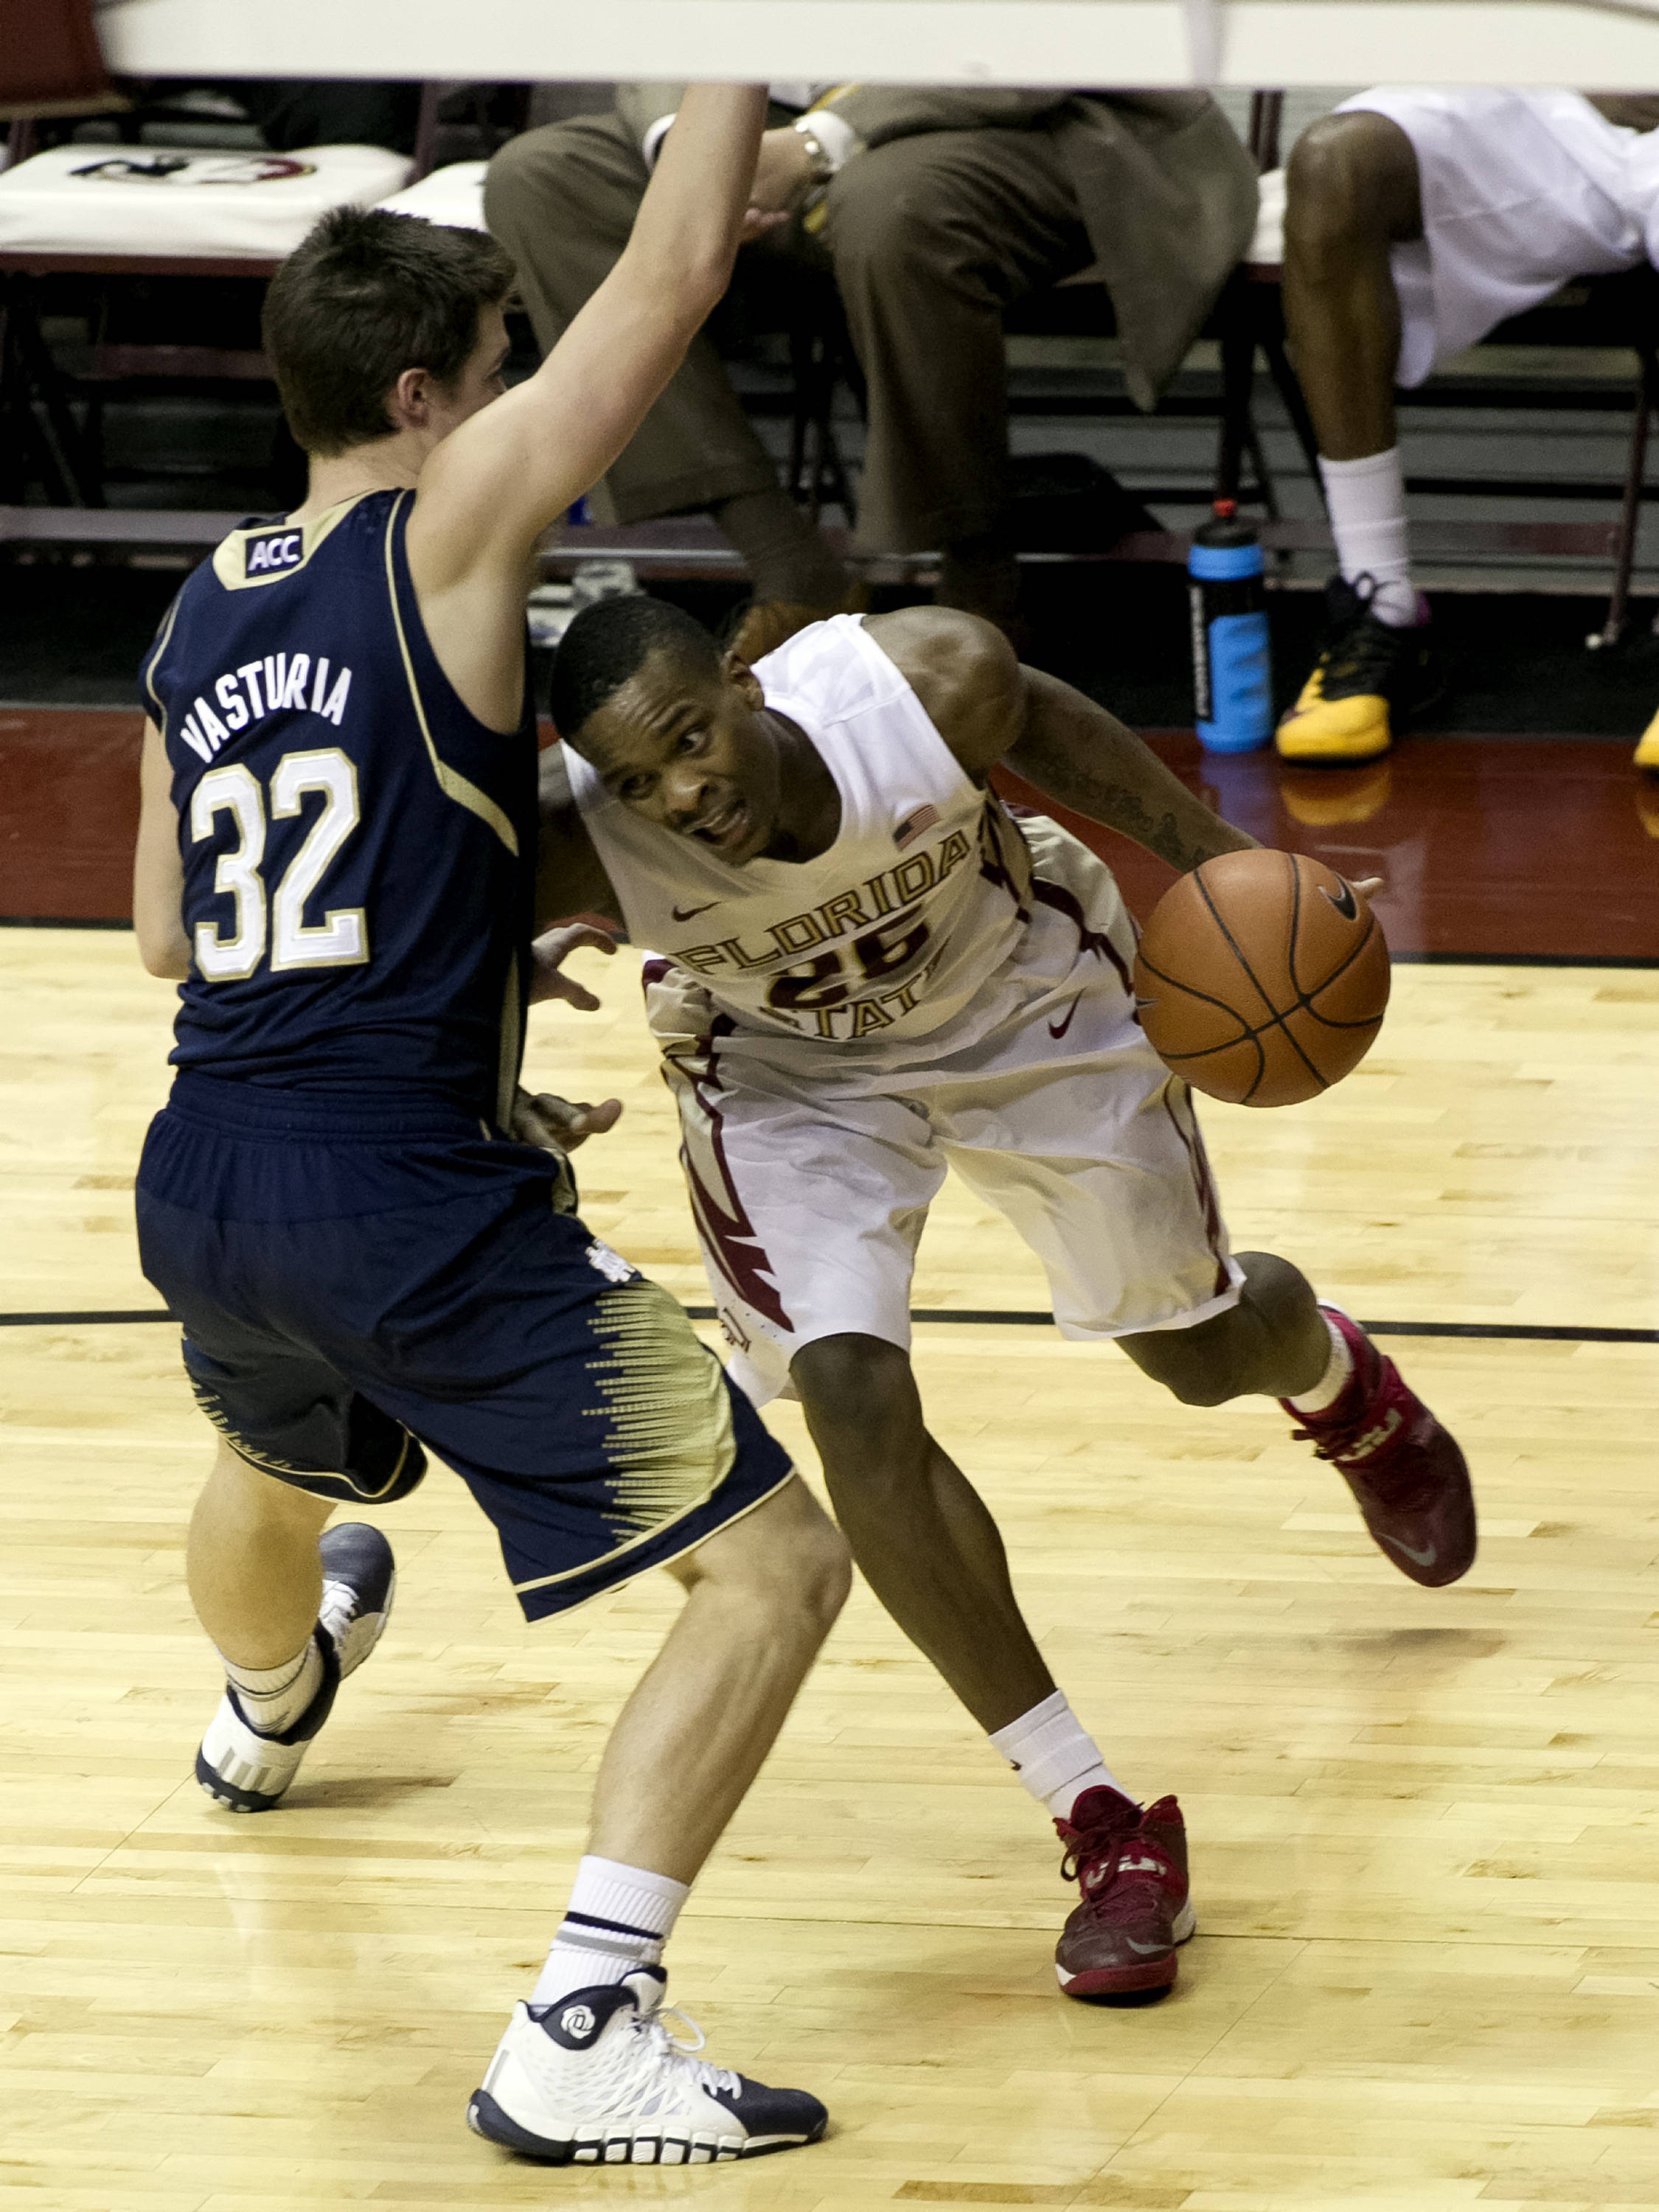 Aaron Thomas (25) fighting on the drive to the basket, FSU vs Notre Dame, 1-21-14, (Photo's by Steve Musco)